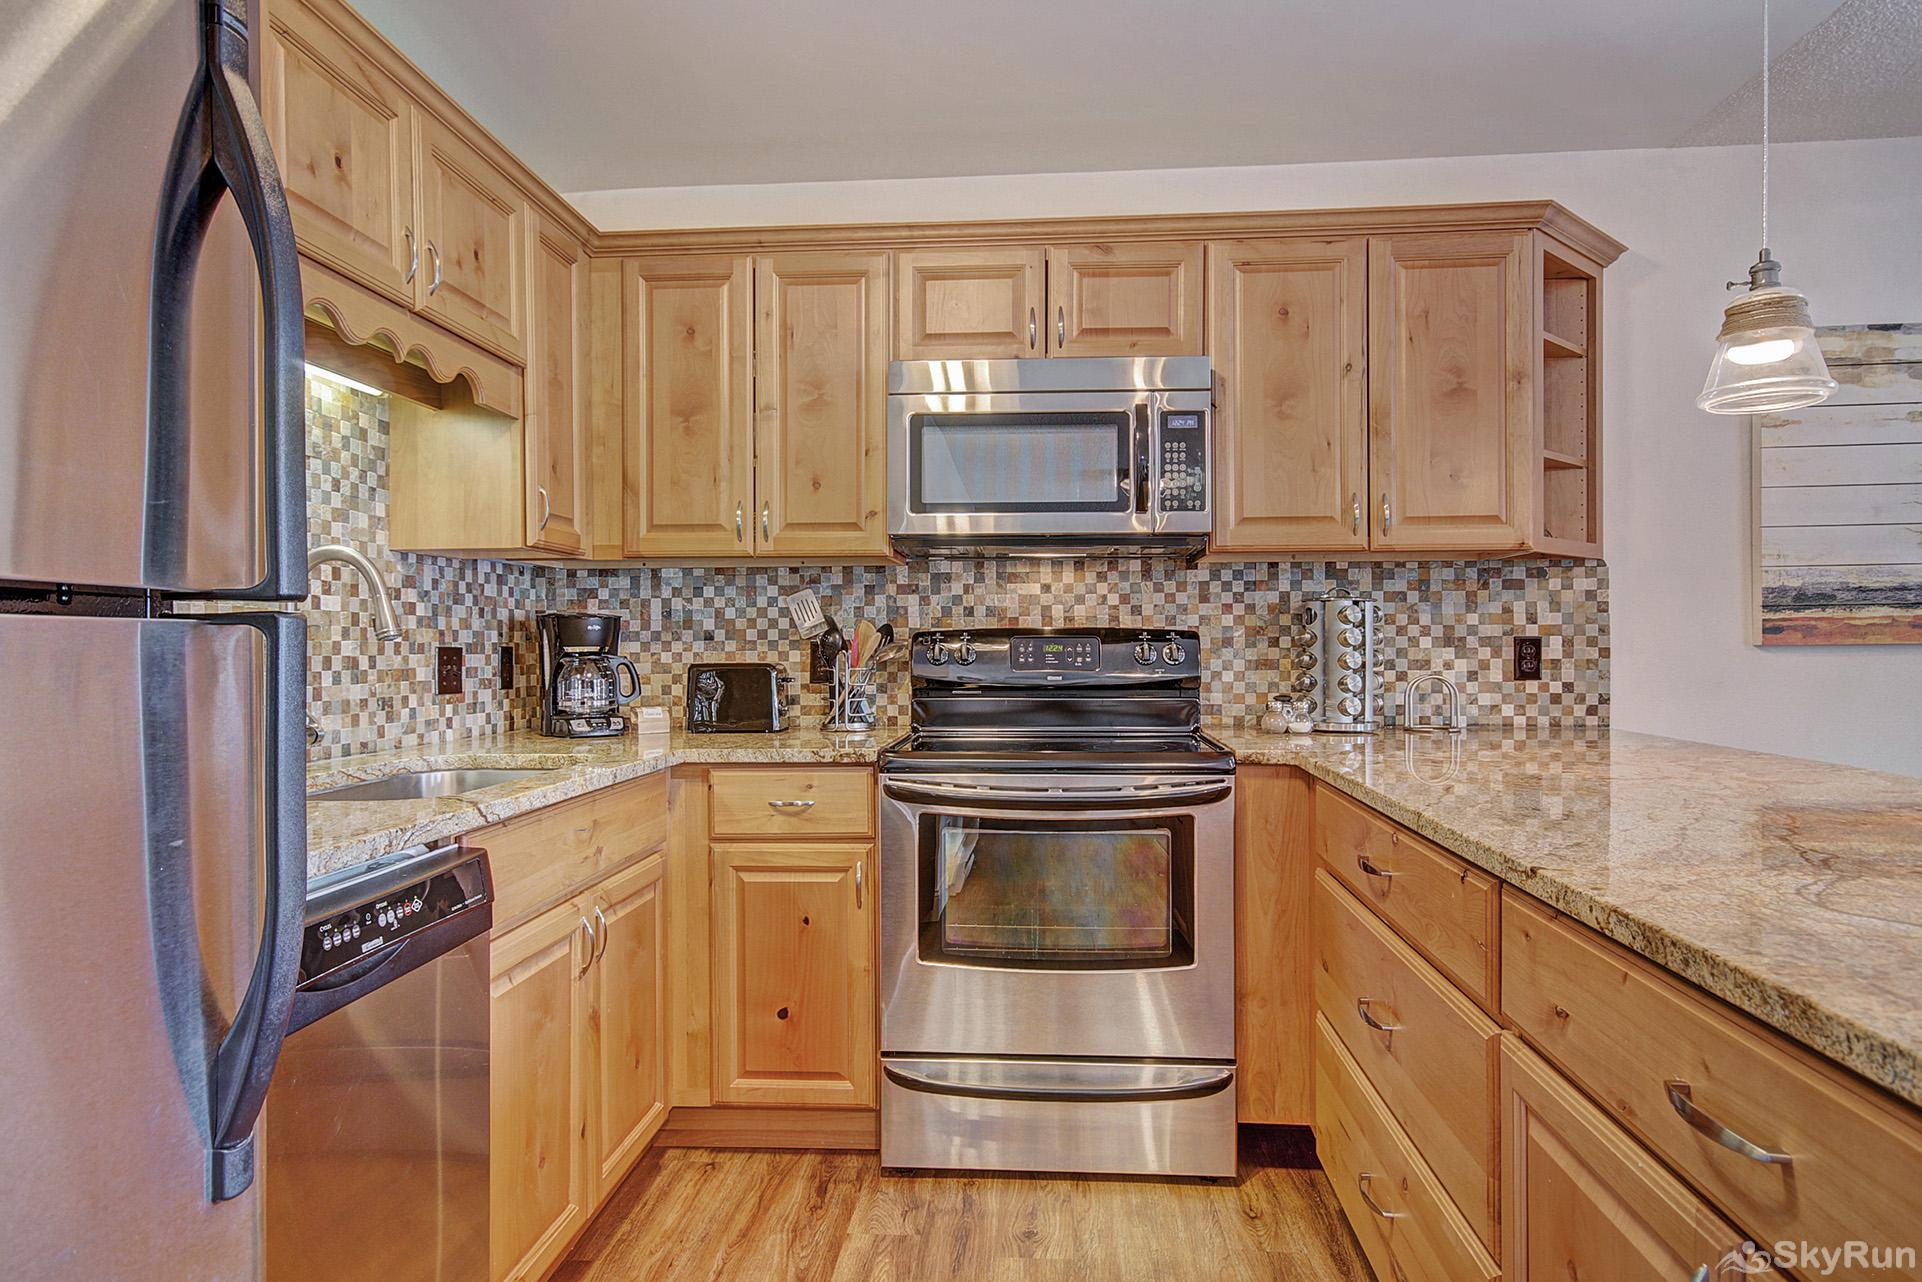 Tyra Summit A2E/F Fully equipped kitchen updated with stainless steel appliances